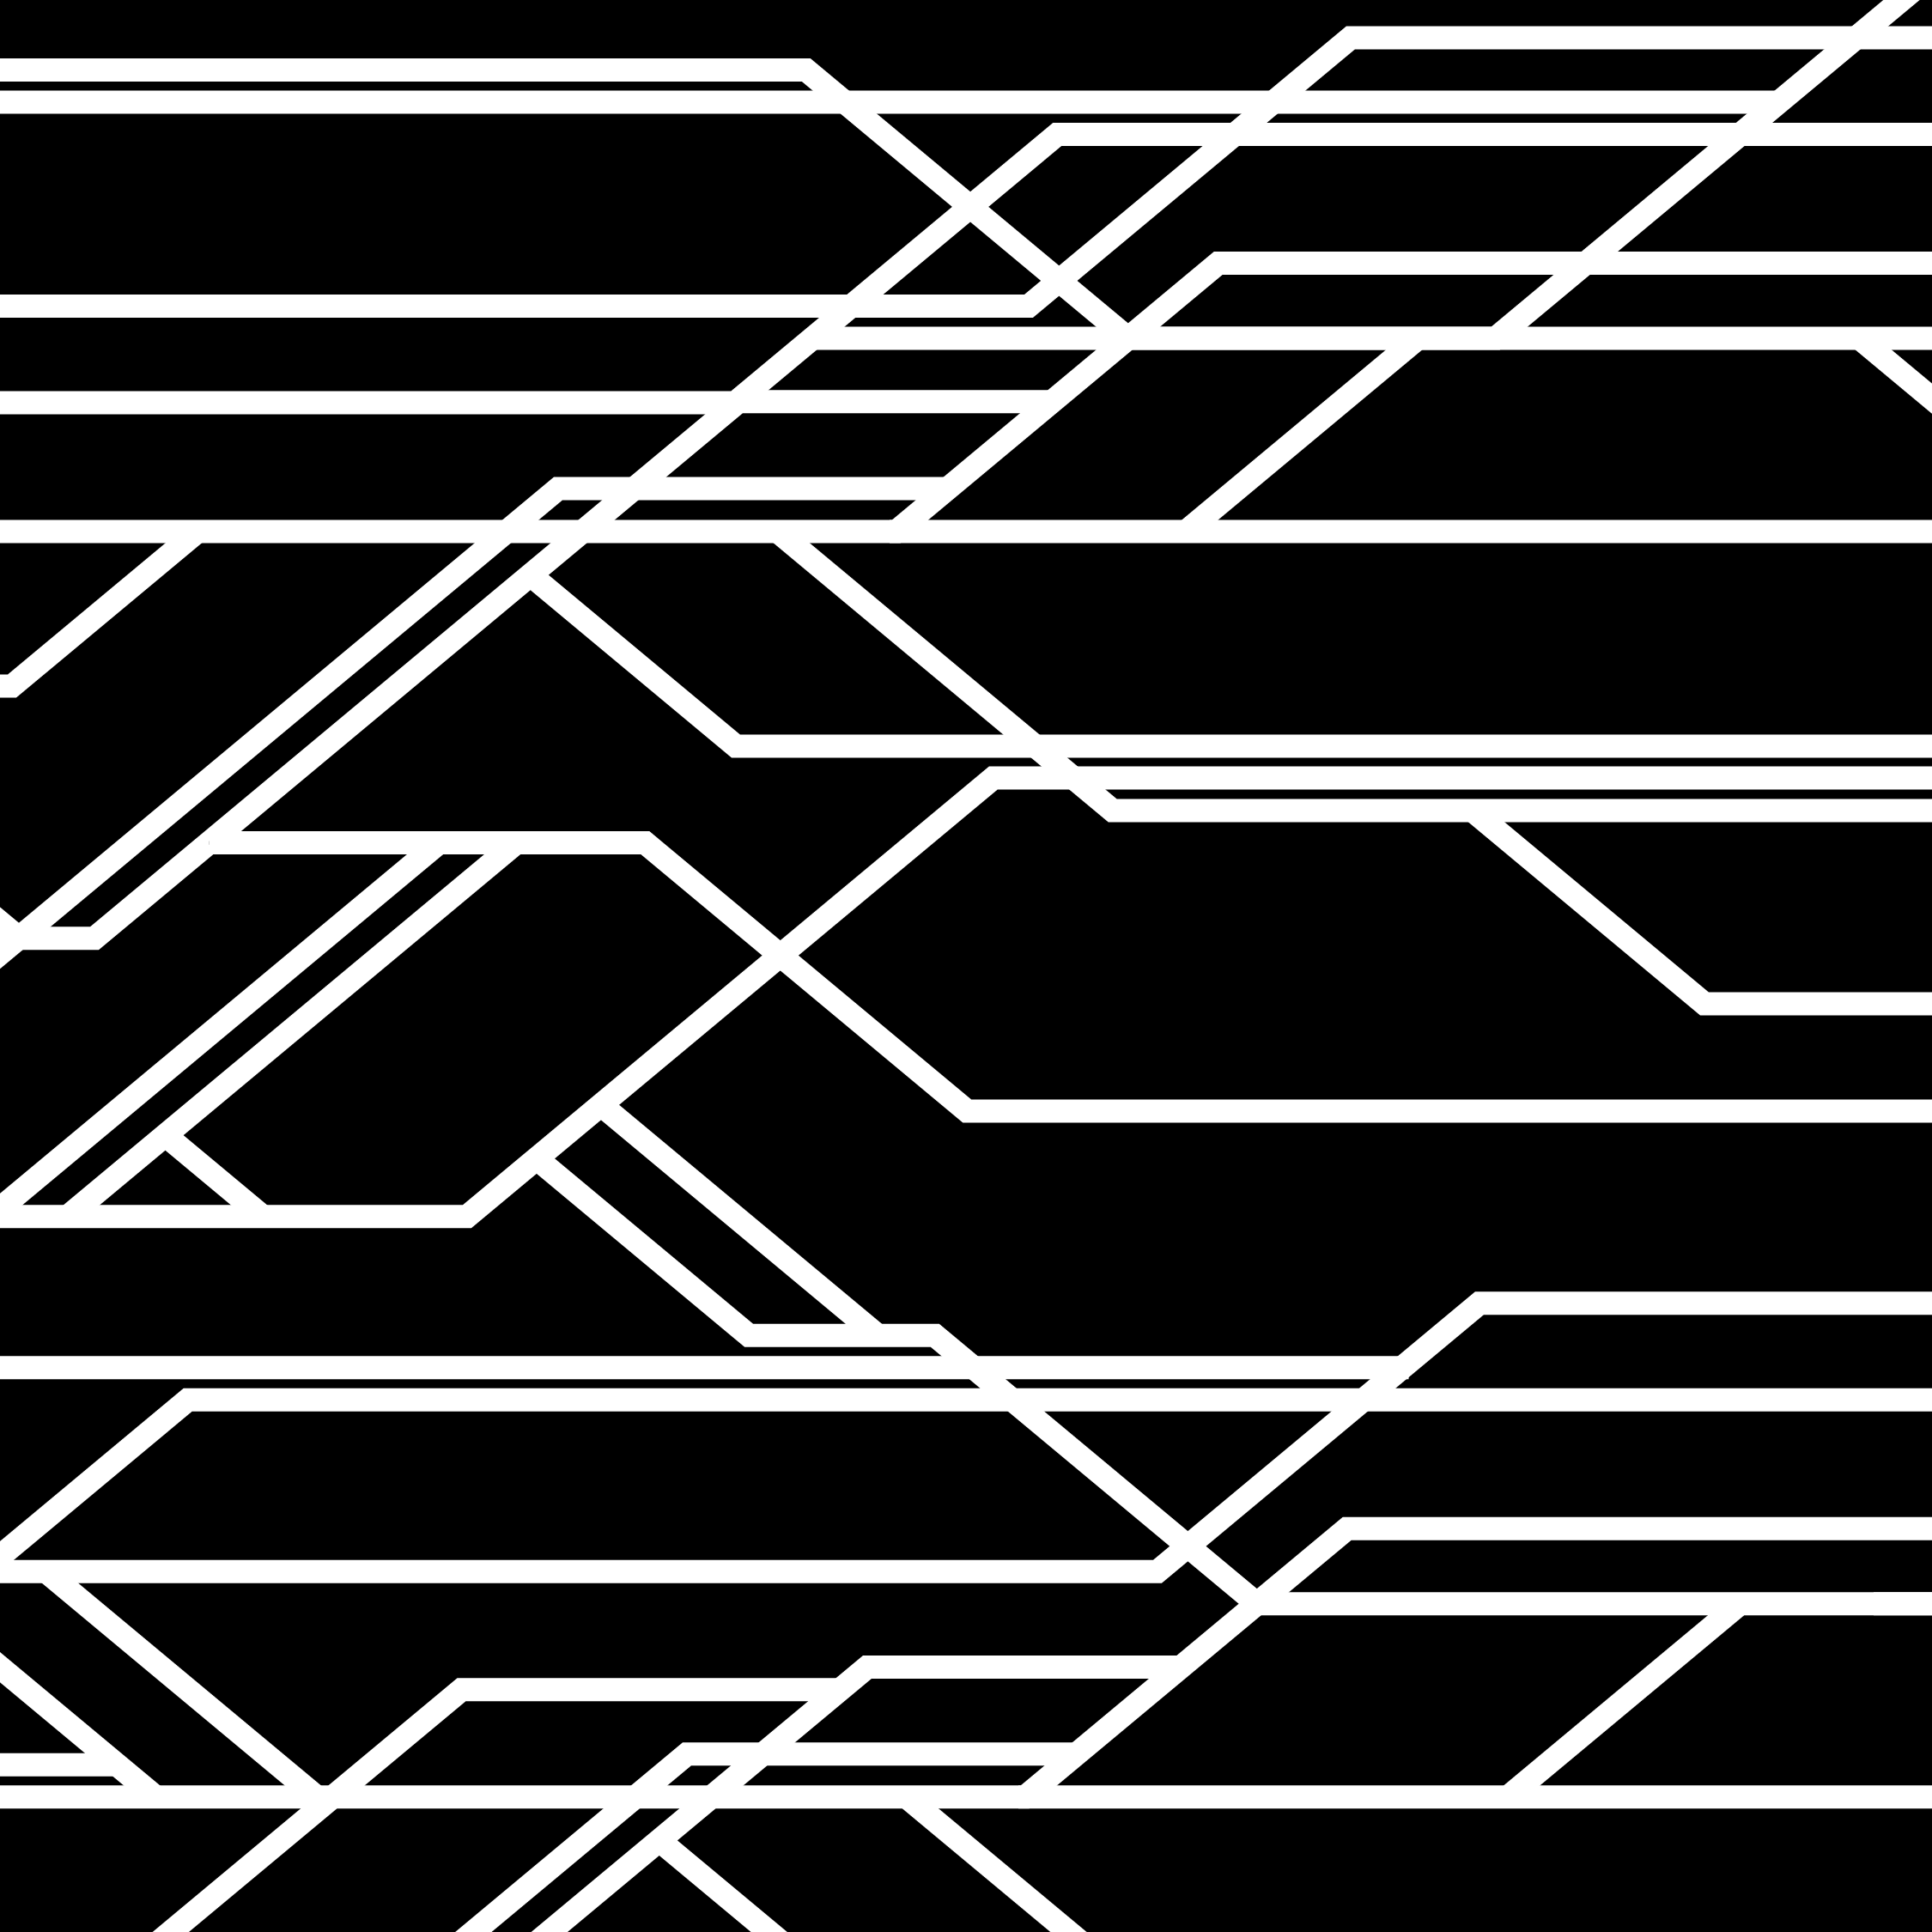 Wires-01.png